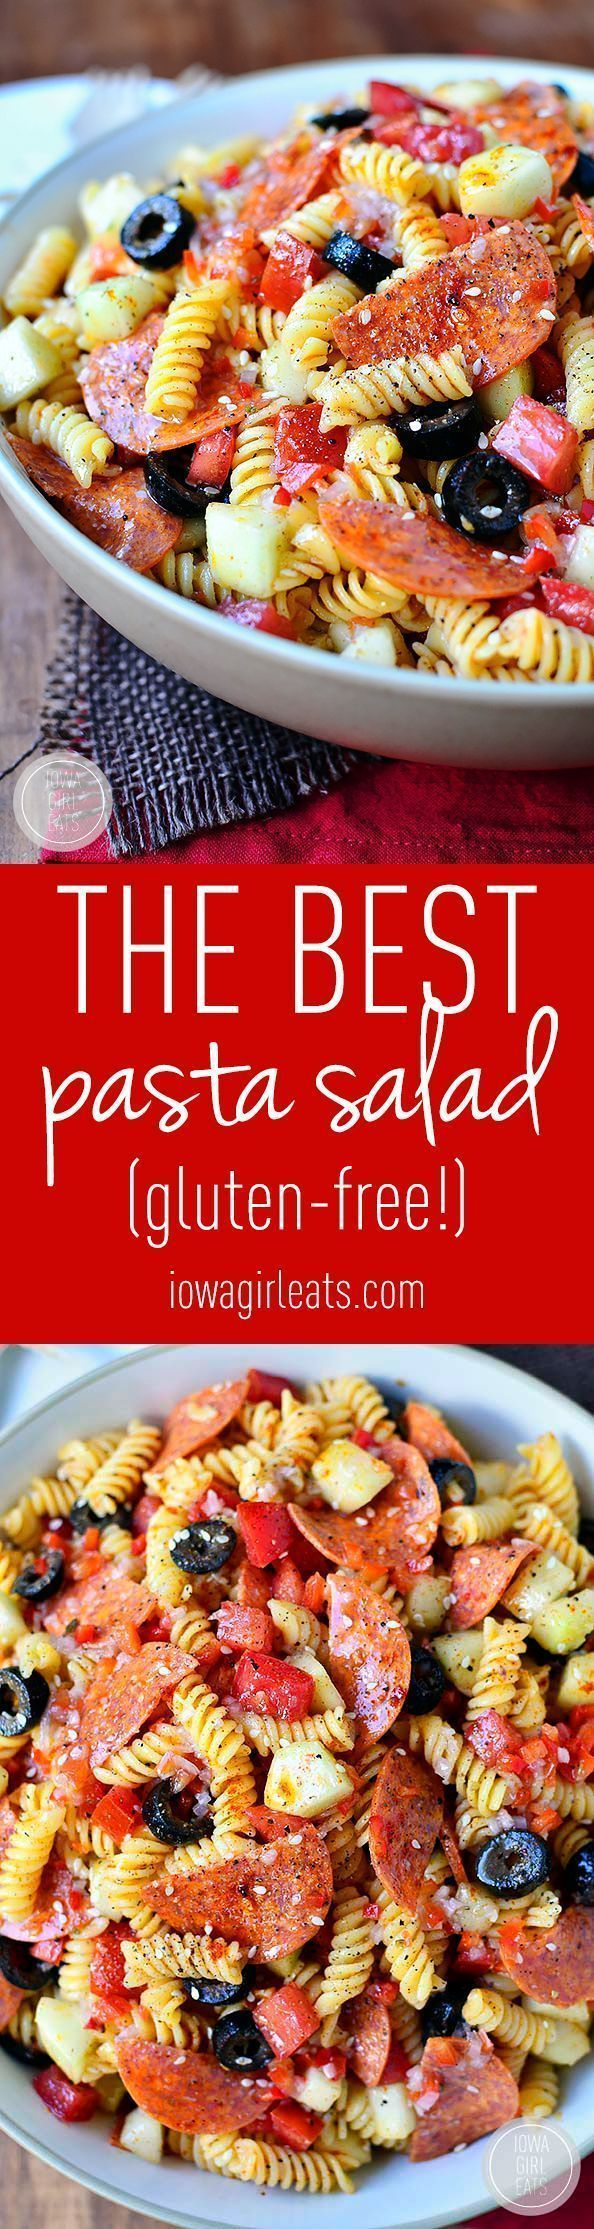 The BEST Pasta Salad is an old family recipe. Simple and simply the best (easily made gluten-free, too!) #glutenfree